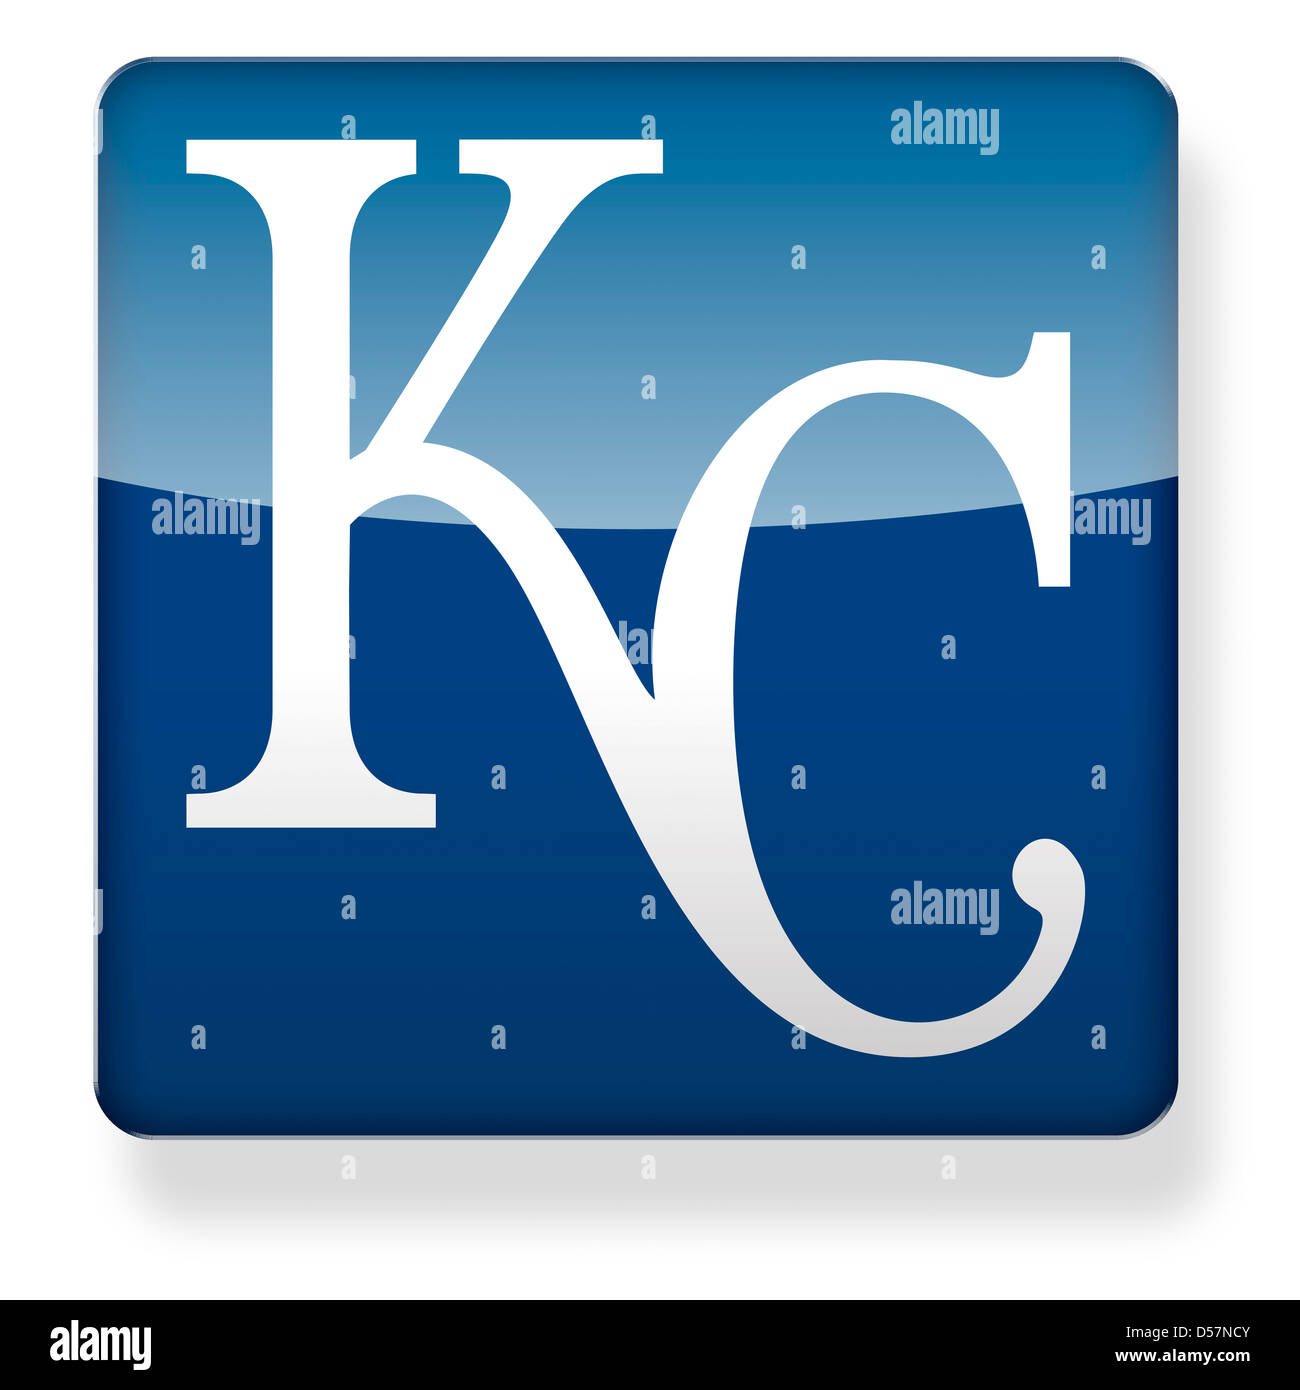 Kansas City Royals baseball cap logo as an app icon. Clipping path included. - Stock Image